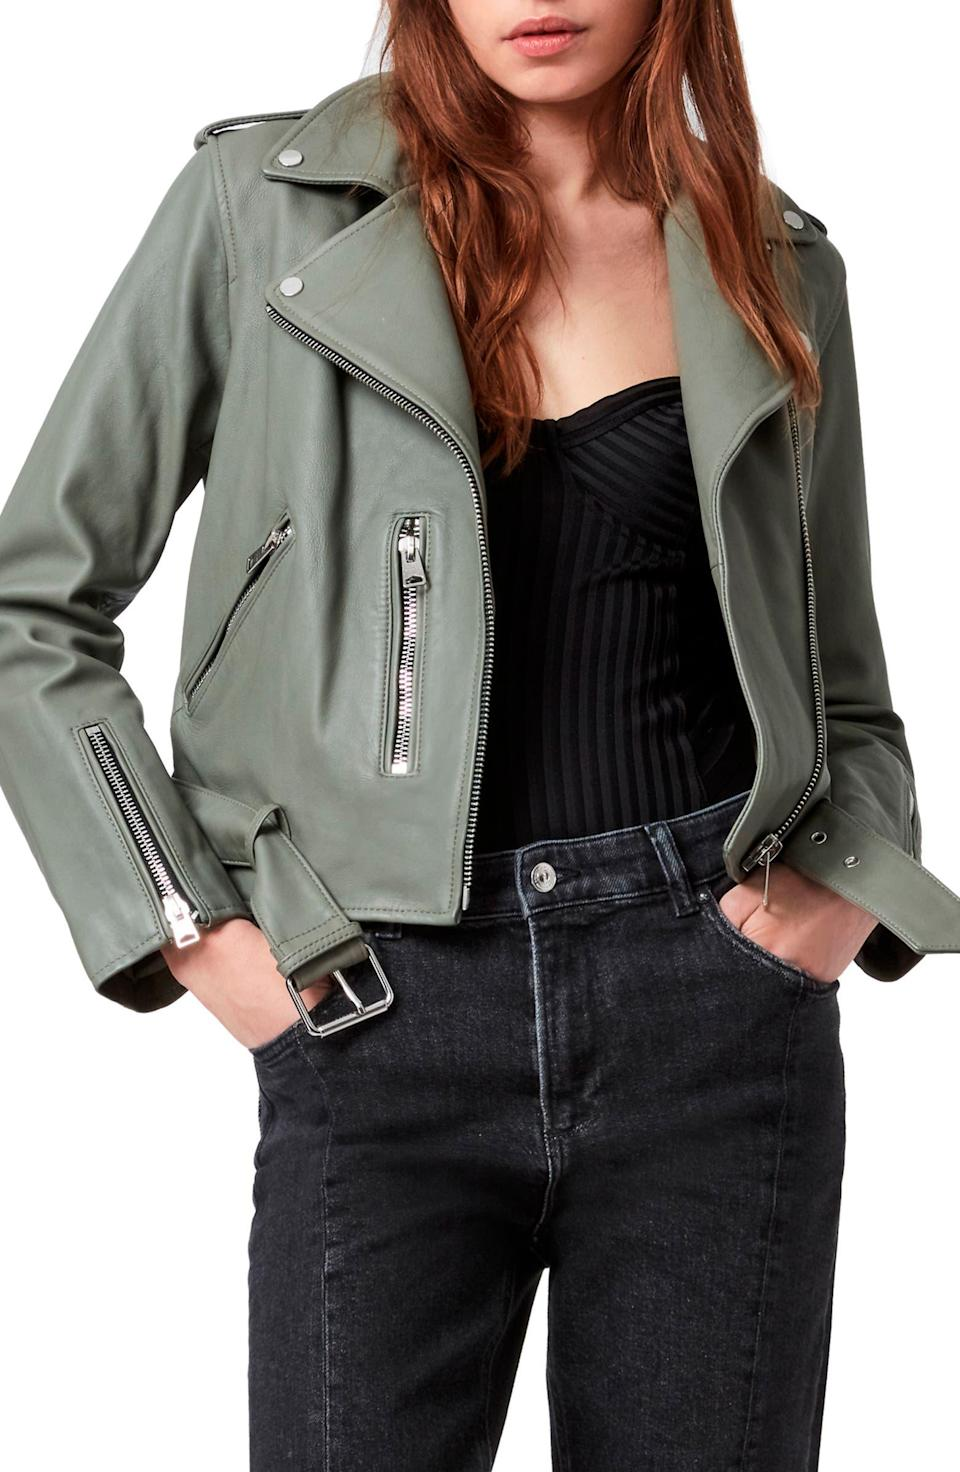 """<h2>AllSaints Balfern Leather Biker Jacket</h2><br><strong>SELLING FAST</strong><br>Another AllSaints fall favorite that's on its way to sellout town. While still a pricey sale score (it is $160 off, however!), the moto-style jacket is a premium investment buy: made from buttery soft leather and features silvertone hardware with an adjustable buckle belt.<br><br><em>Shop more <a href=""""https://go.skimresources.com/?id=30283X879131&xs=1&url=https%3A%2F%2Fwww.nordstrom.com%2Fbrowse%2Fanniversary-sale%2Fall%3FpostalCodeAvailability%3D10543%26filterByProductType%3Dclothing_jackets&sref=https%3A%2F%2Fwww.refinery29.com%2Fen-us%2Fnordstrom-anniversary-sale-best-sellers"""" rel=""""nofollow noopener"""" target=""""_blank"""" data-ylk=""""slk:Nordstrom Anniversary Sale jackets"""" class=""""link rapid-noclick-resp"""">Nordstrom Anniversary Sale jackets</a></em><br><br><strong>AllSaints</strong> Balfern Leather Biker Jacket, $, available at <a href=""""https://go.skimresources.com/?id=30283X879131&url=https%3A%2F%2Fwww.nordstrom.com%2Fs%2Fallsaints-balfern-leather-biker-jacket%2F4888436"""" rel=""""nofollow noopener"""" target=""""_blank"""" data-ylk=""""slk:Nordstrom"""" class=""""link rapid-noclick-resp"""">Nordstrom</a>"""